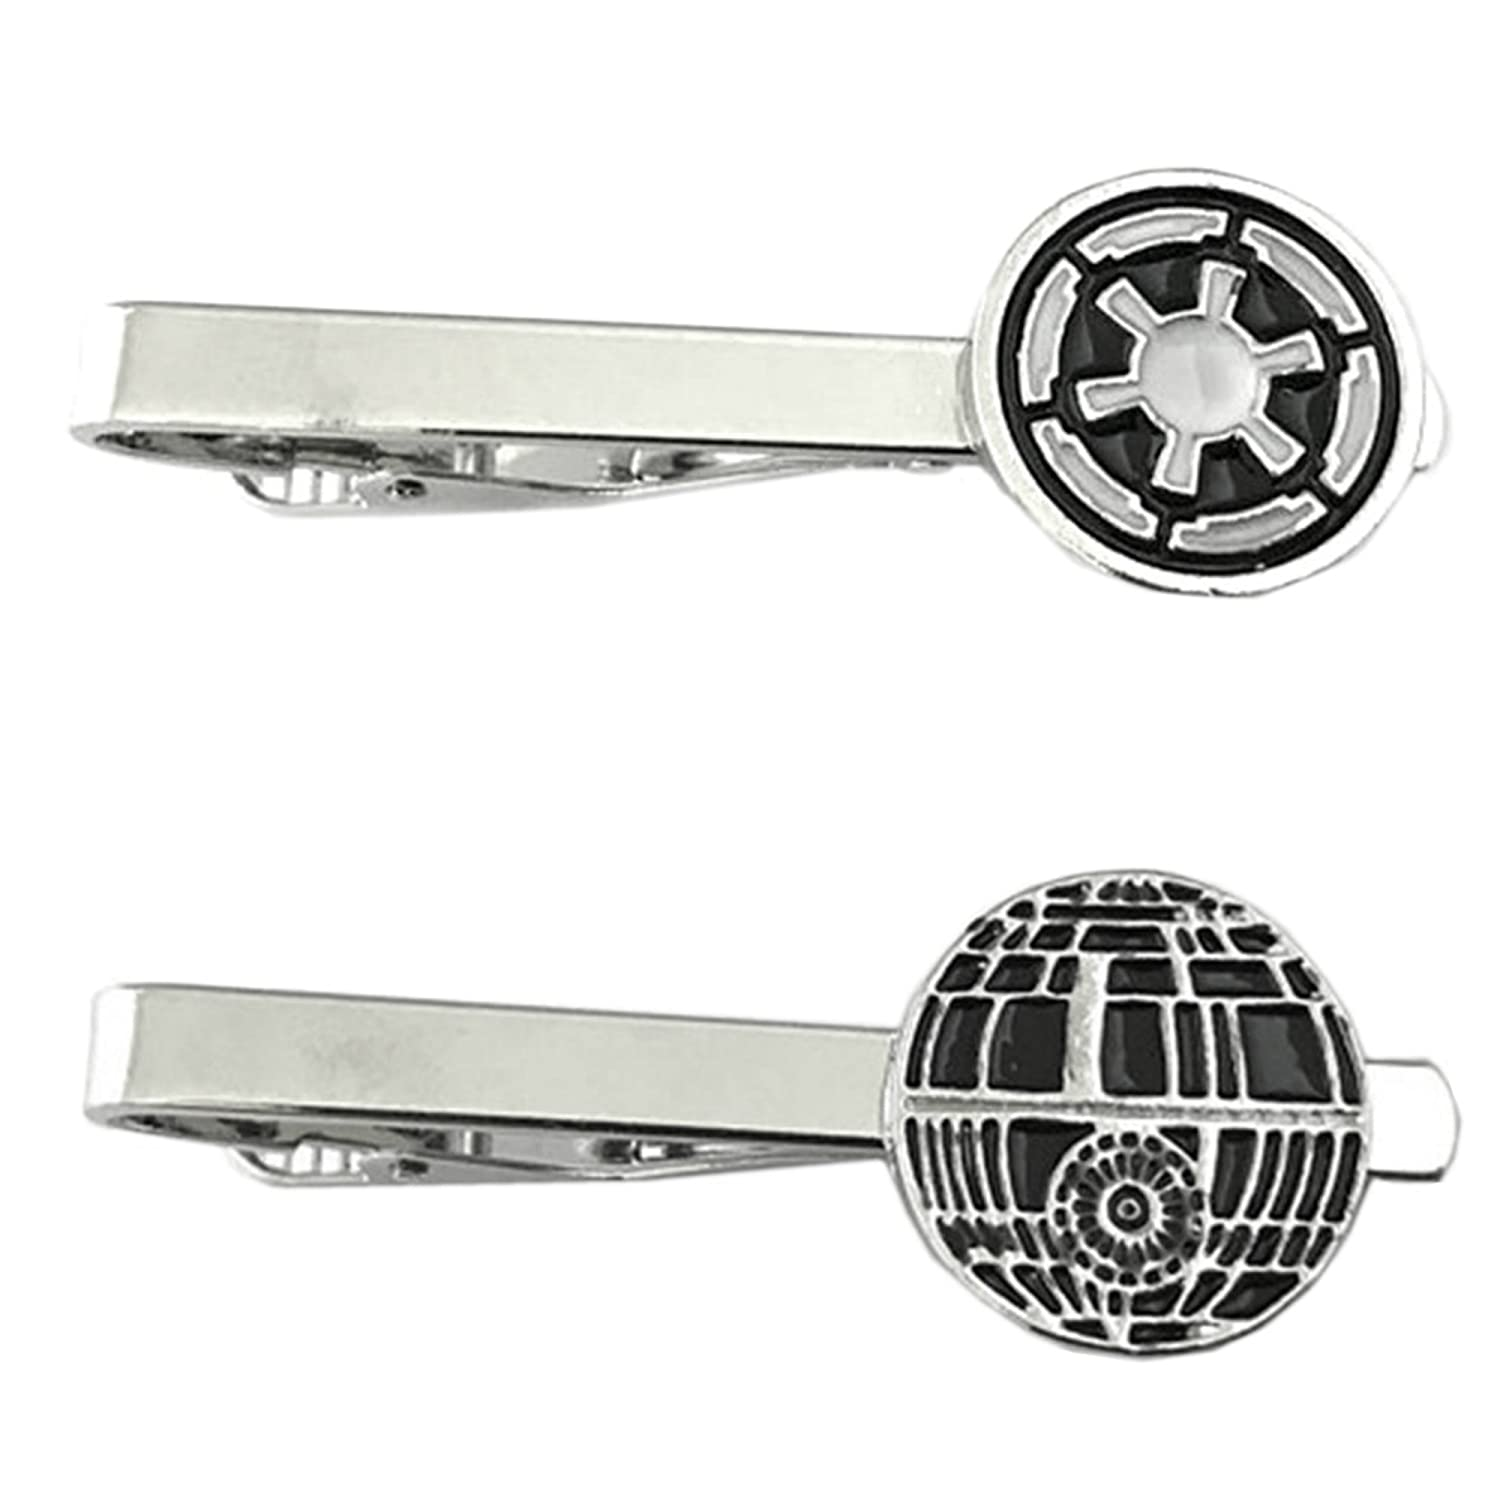 Outlander Star Wars - Imperial & Death Star - Tiebar Tie Clasp Set of 2 Wedding Superhero Logo w/Gift Box Outlander Brand